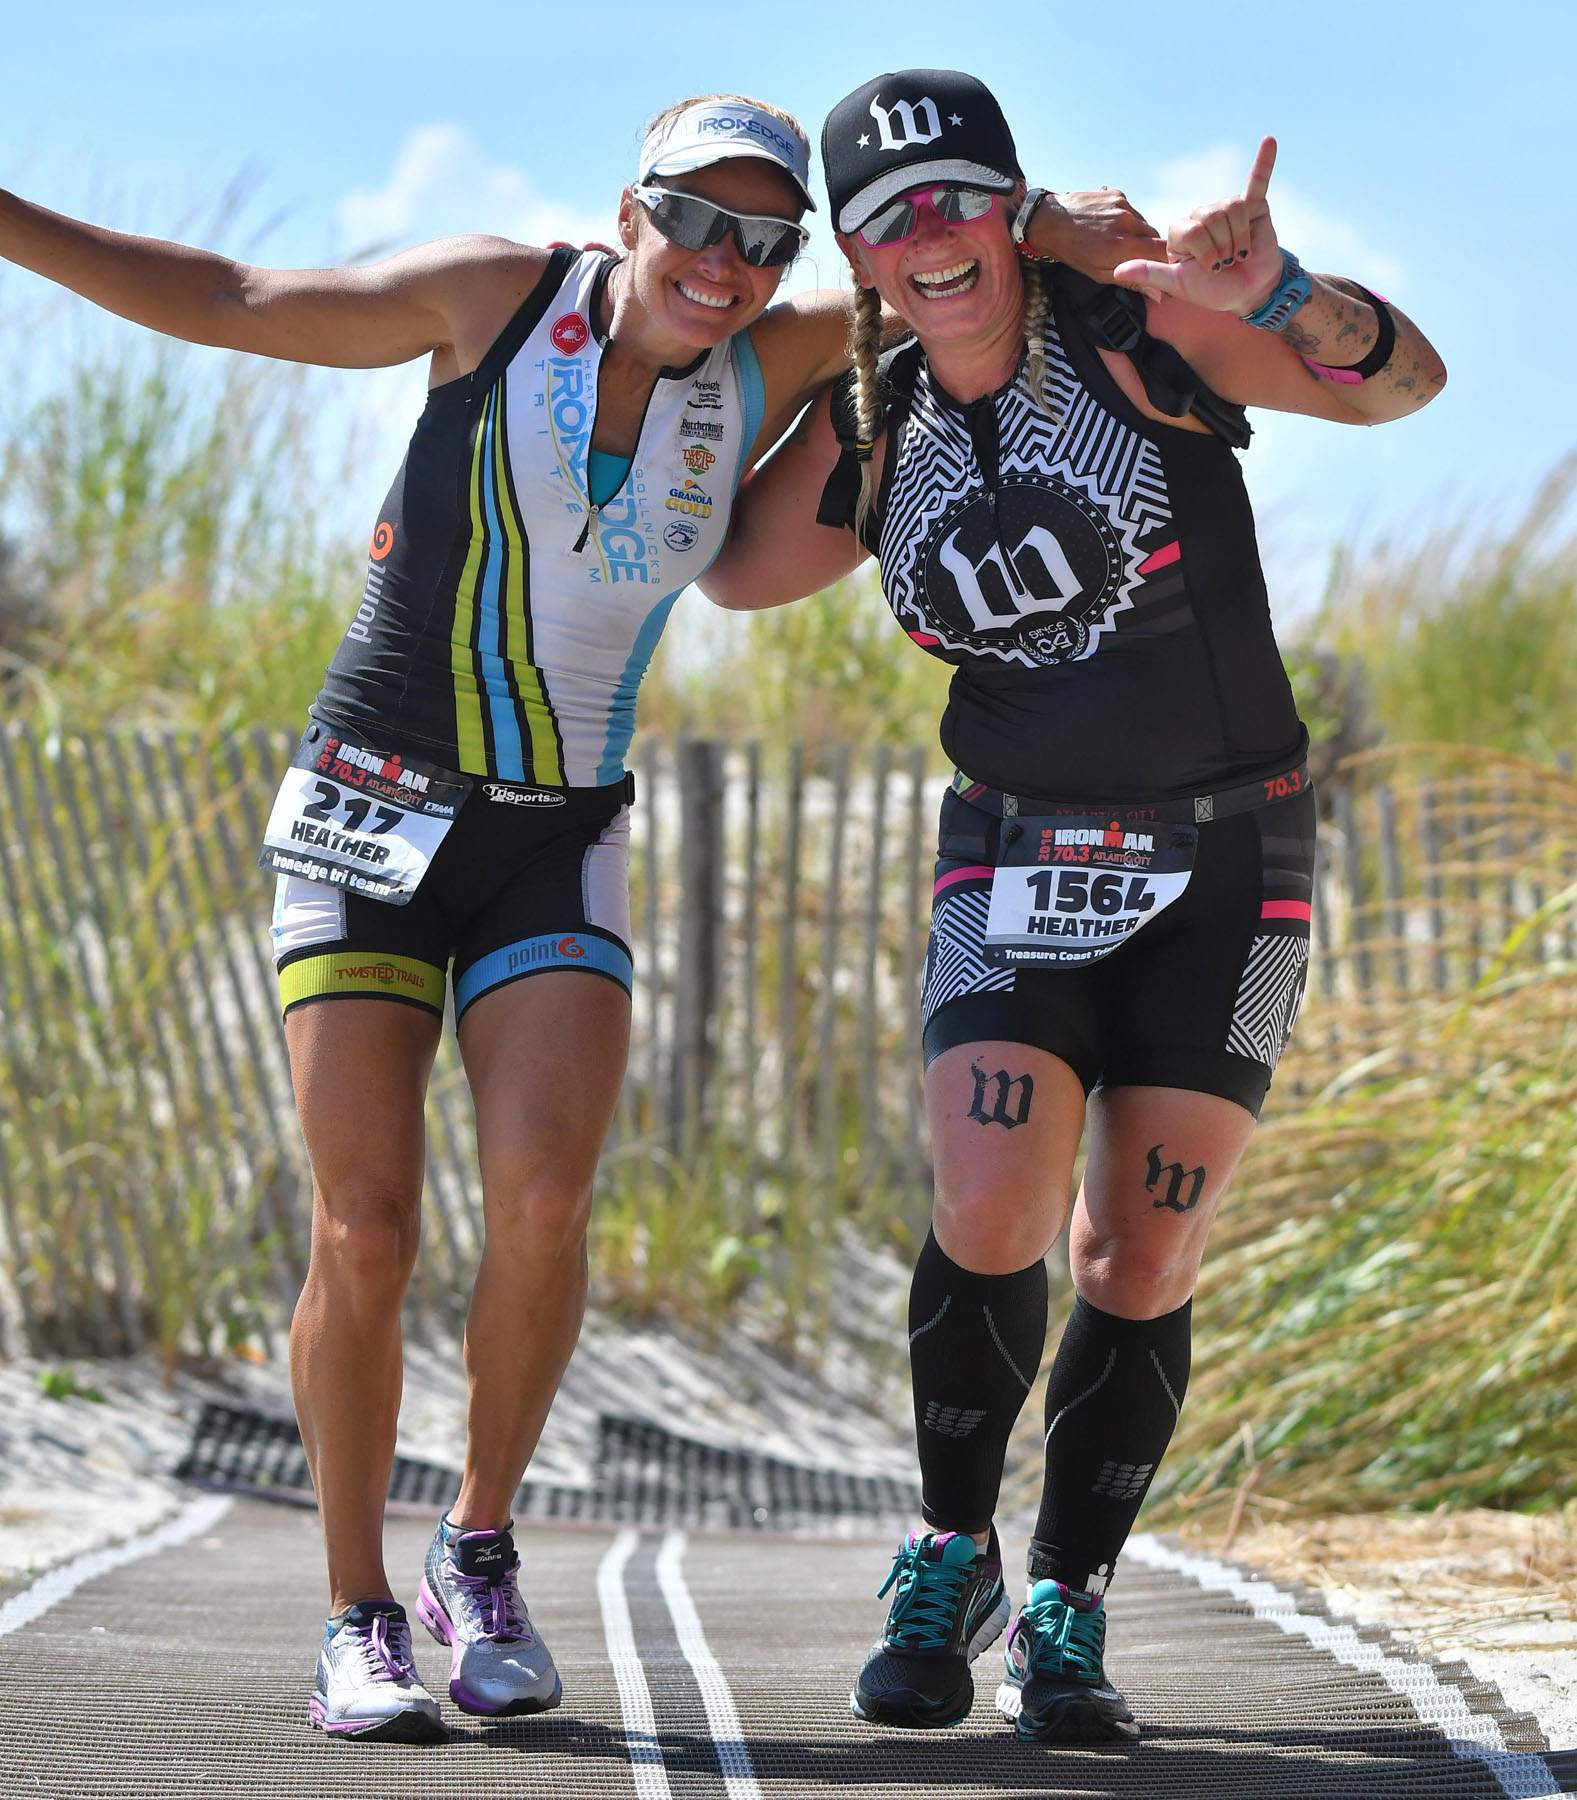 heather gollnick & W tatoo - Ironman 70.3 Atlantic City